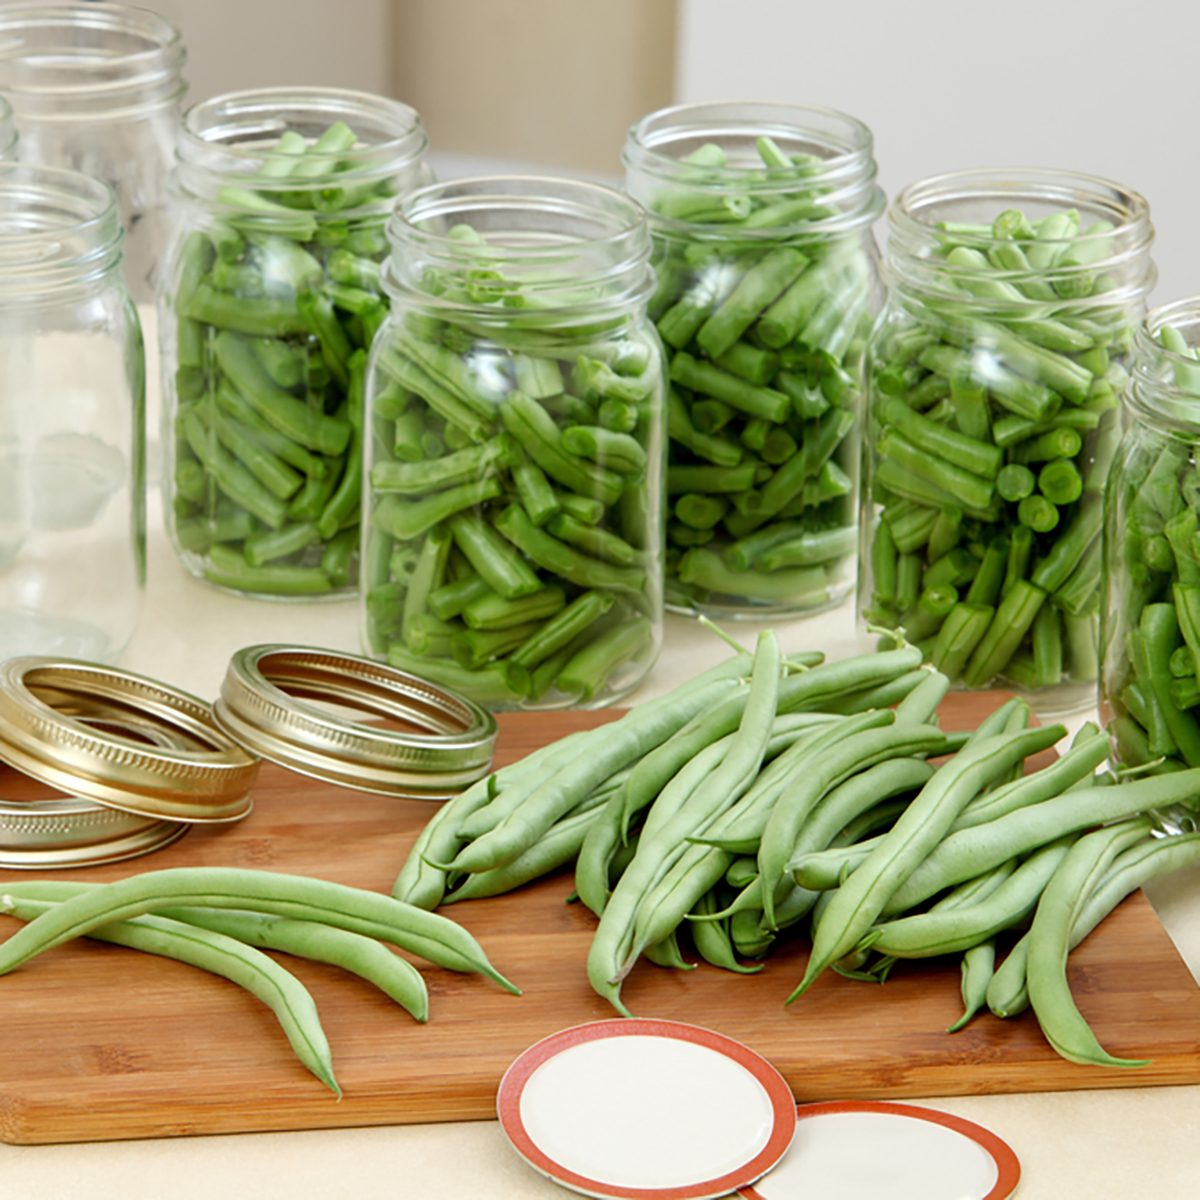 Green beans in a traditional process of canning and preserving at home